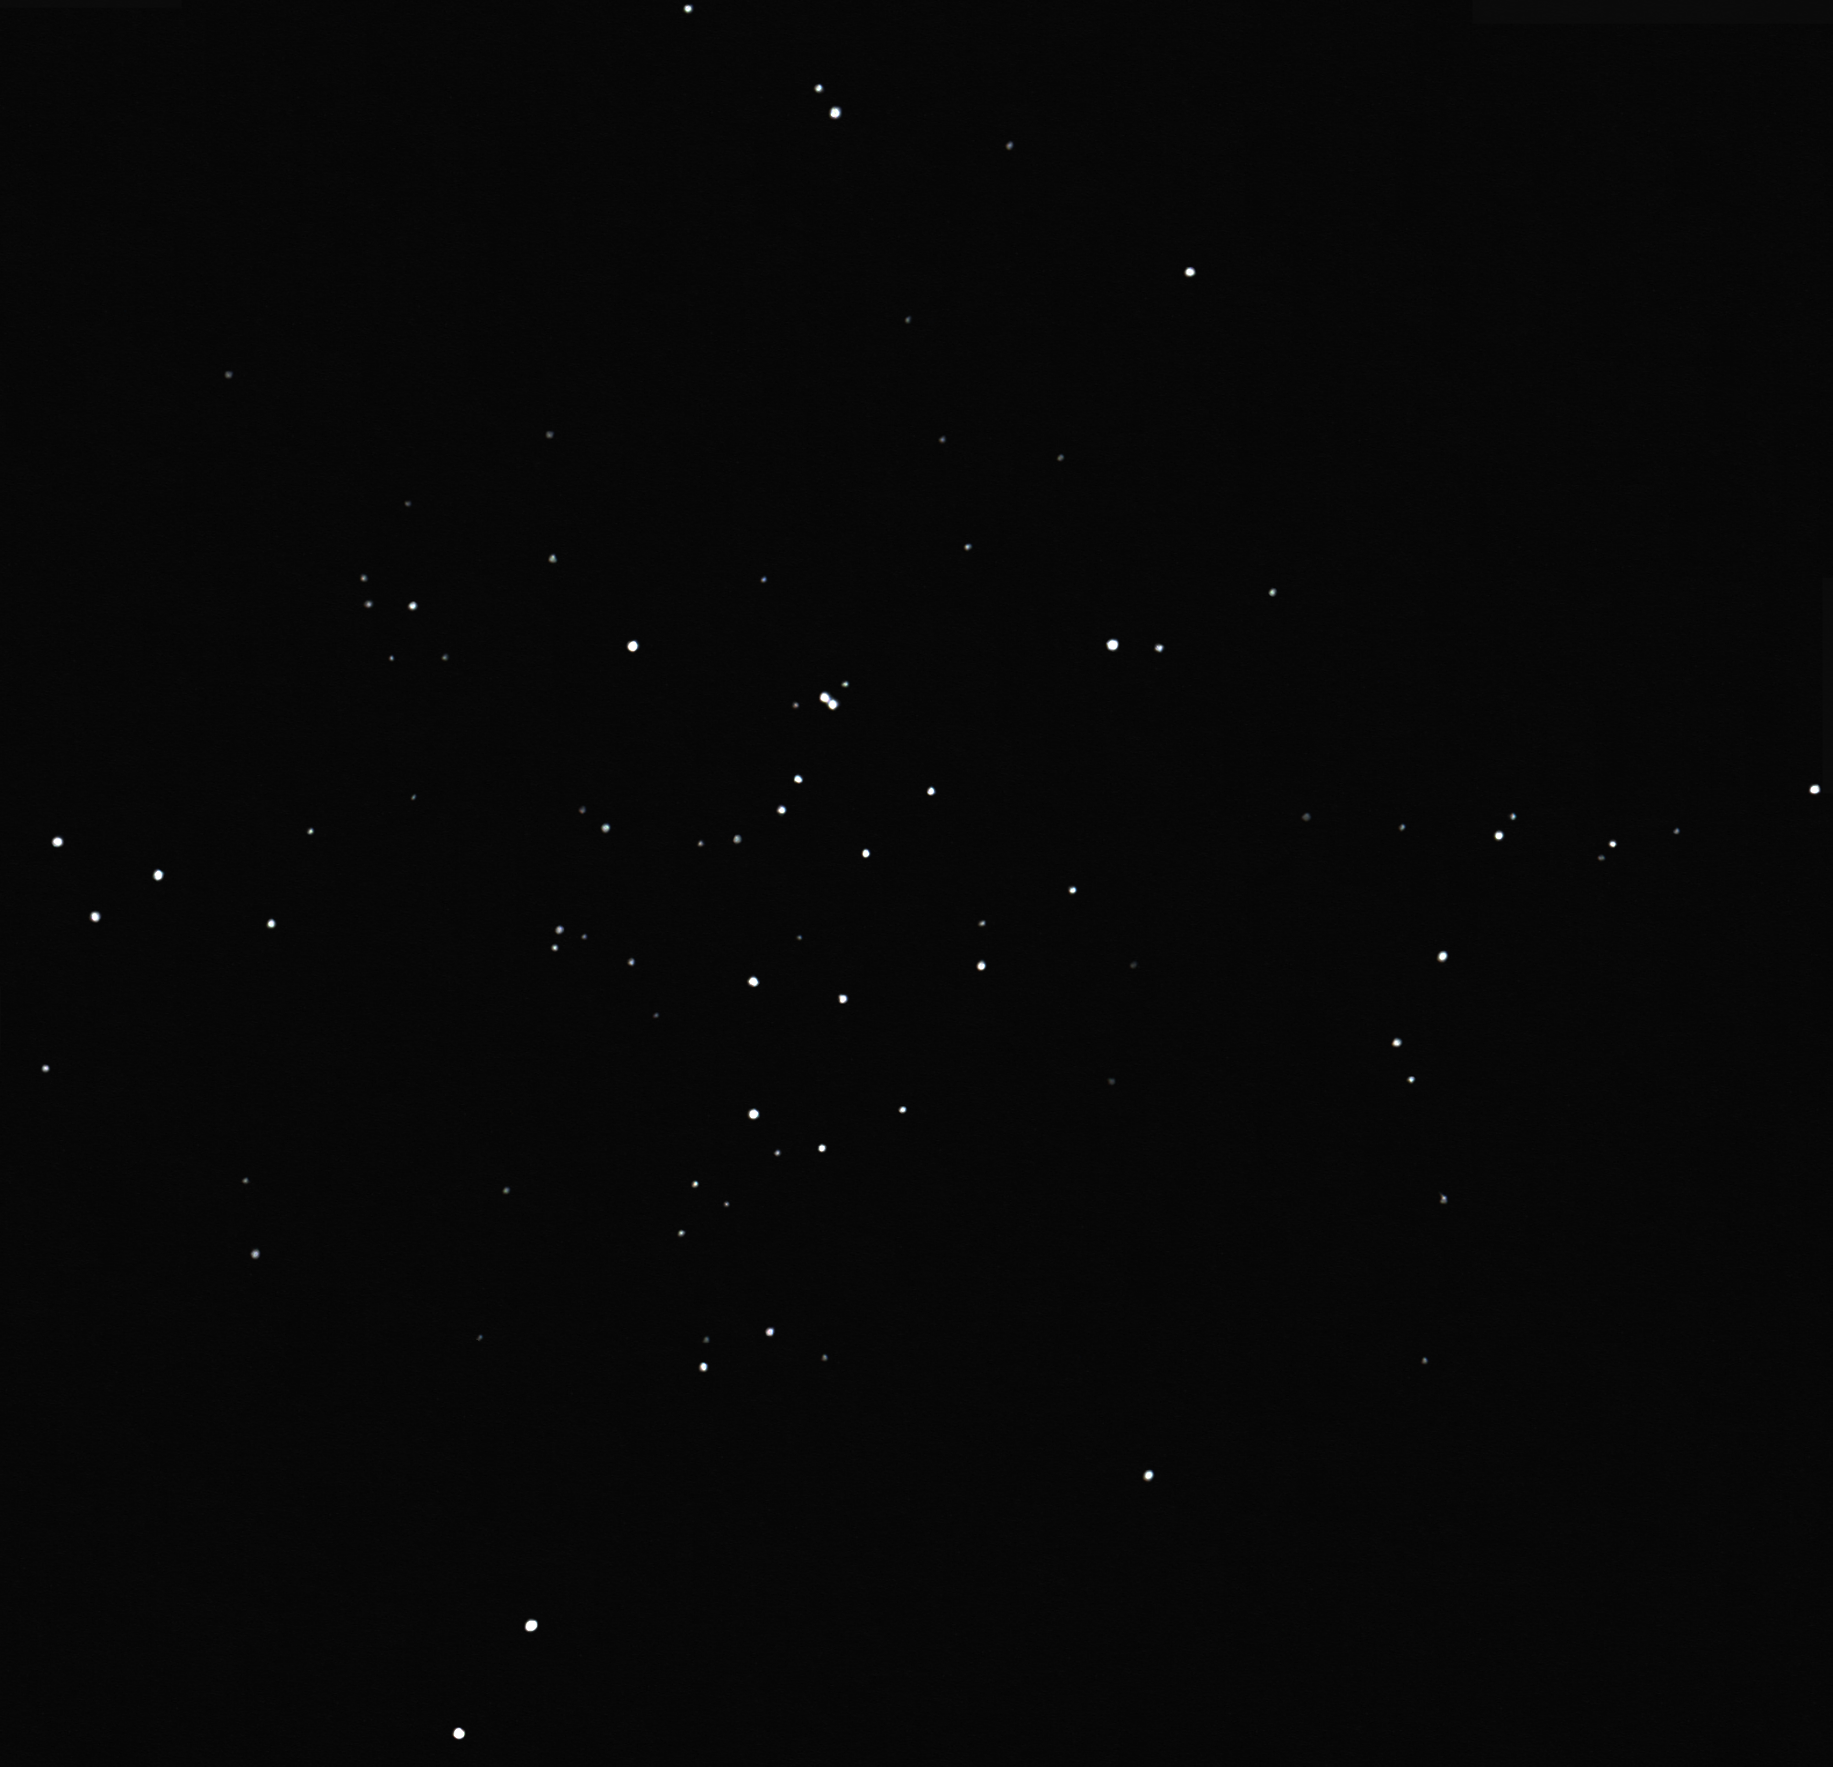 ngc 6866 open cluster